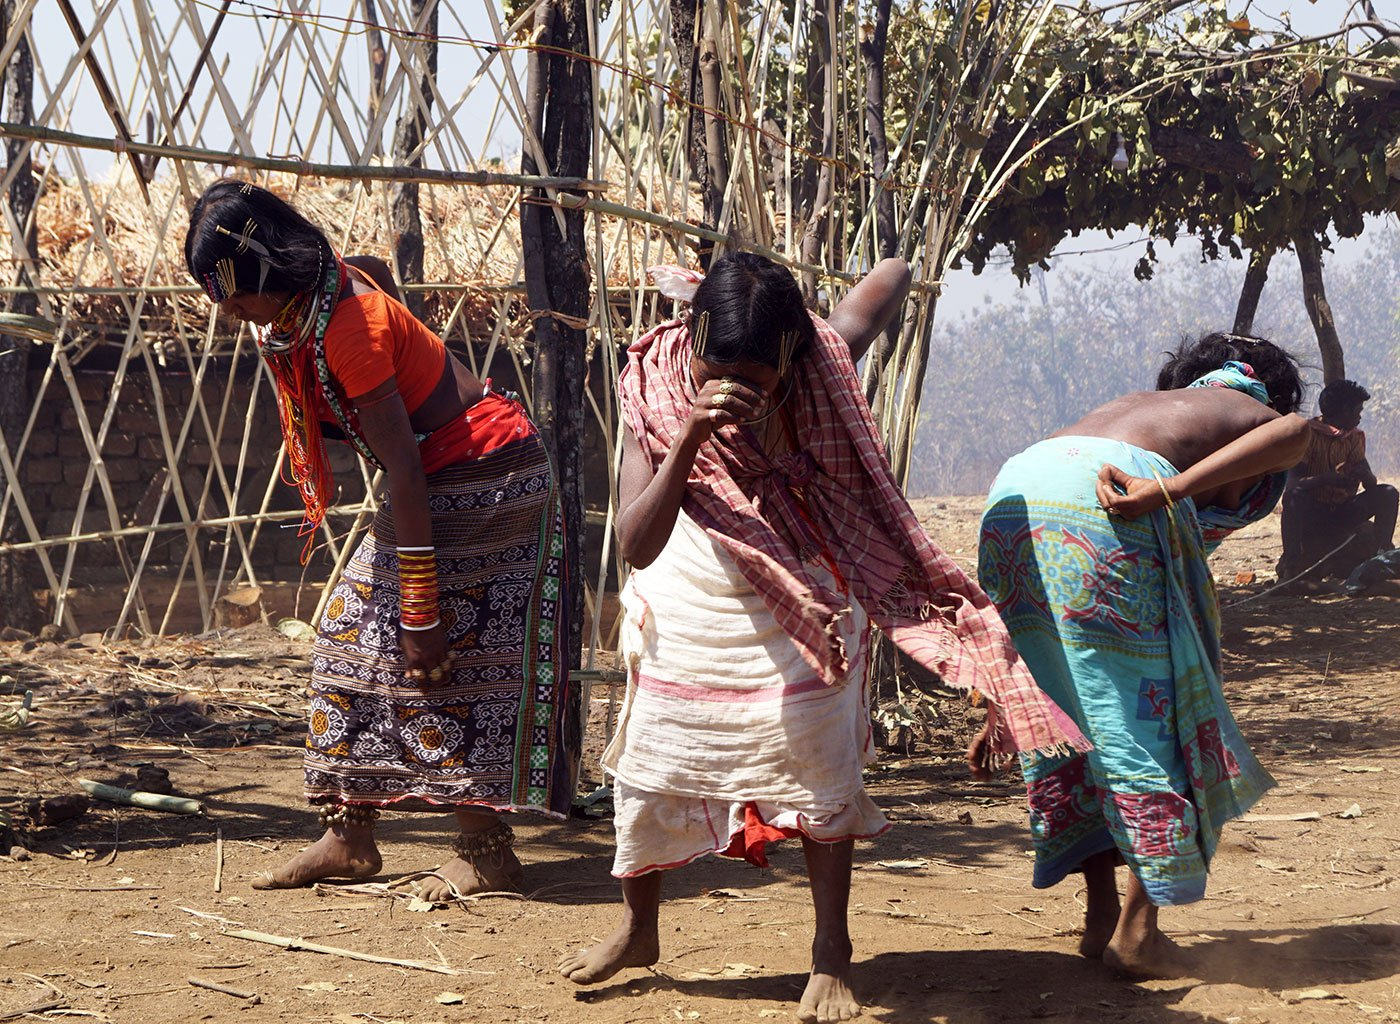 Three tribal women, who are priests, dancing after conducting their rituals